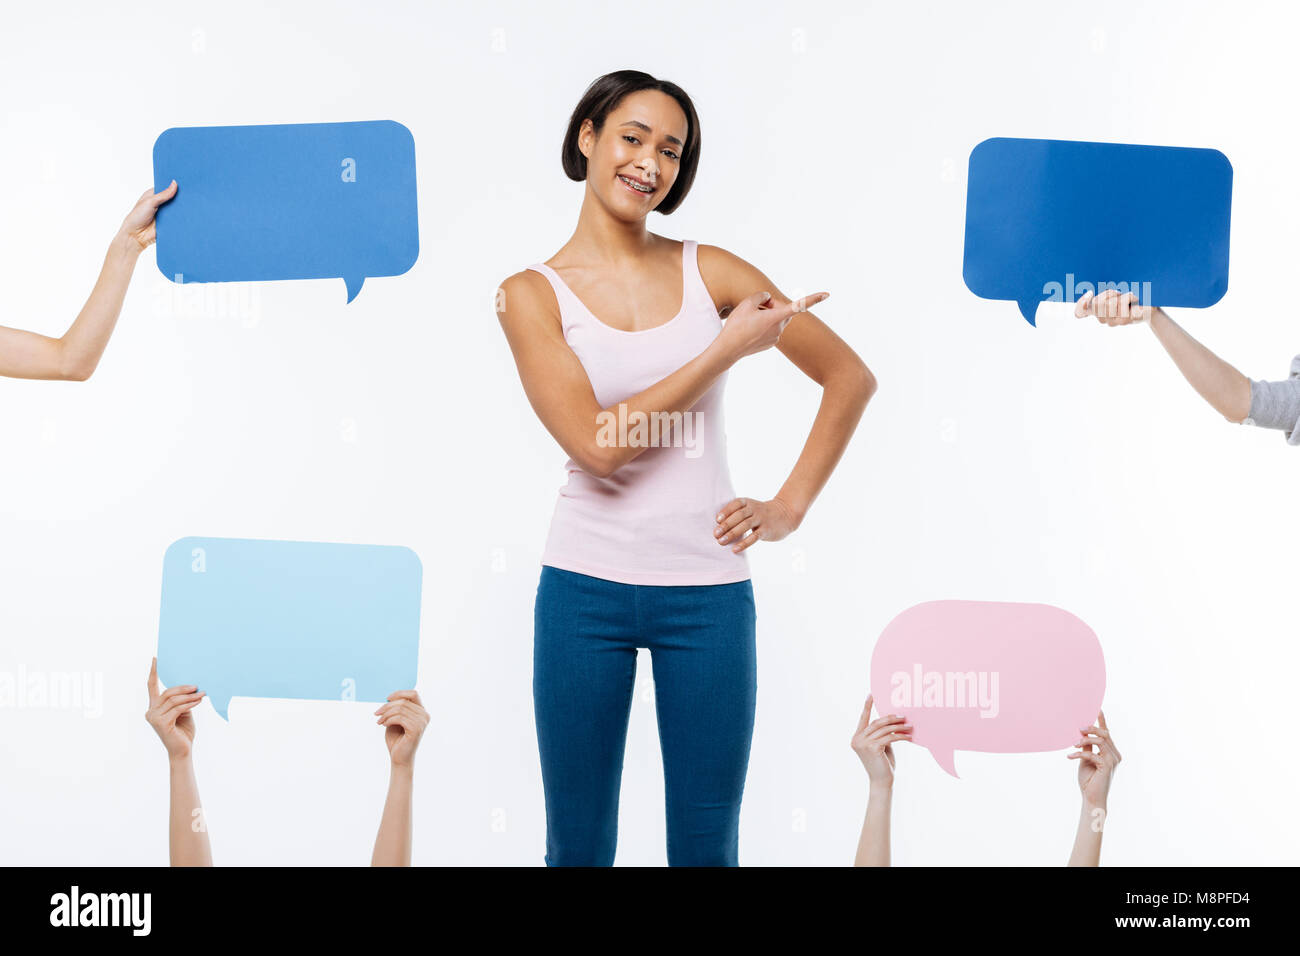 Cheerful positive woman showing her smile - Stock Image